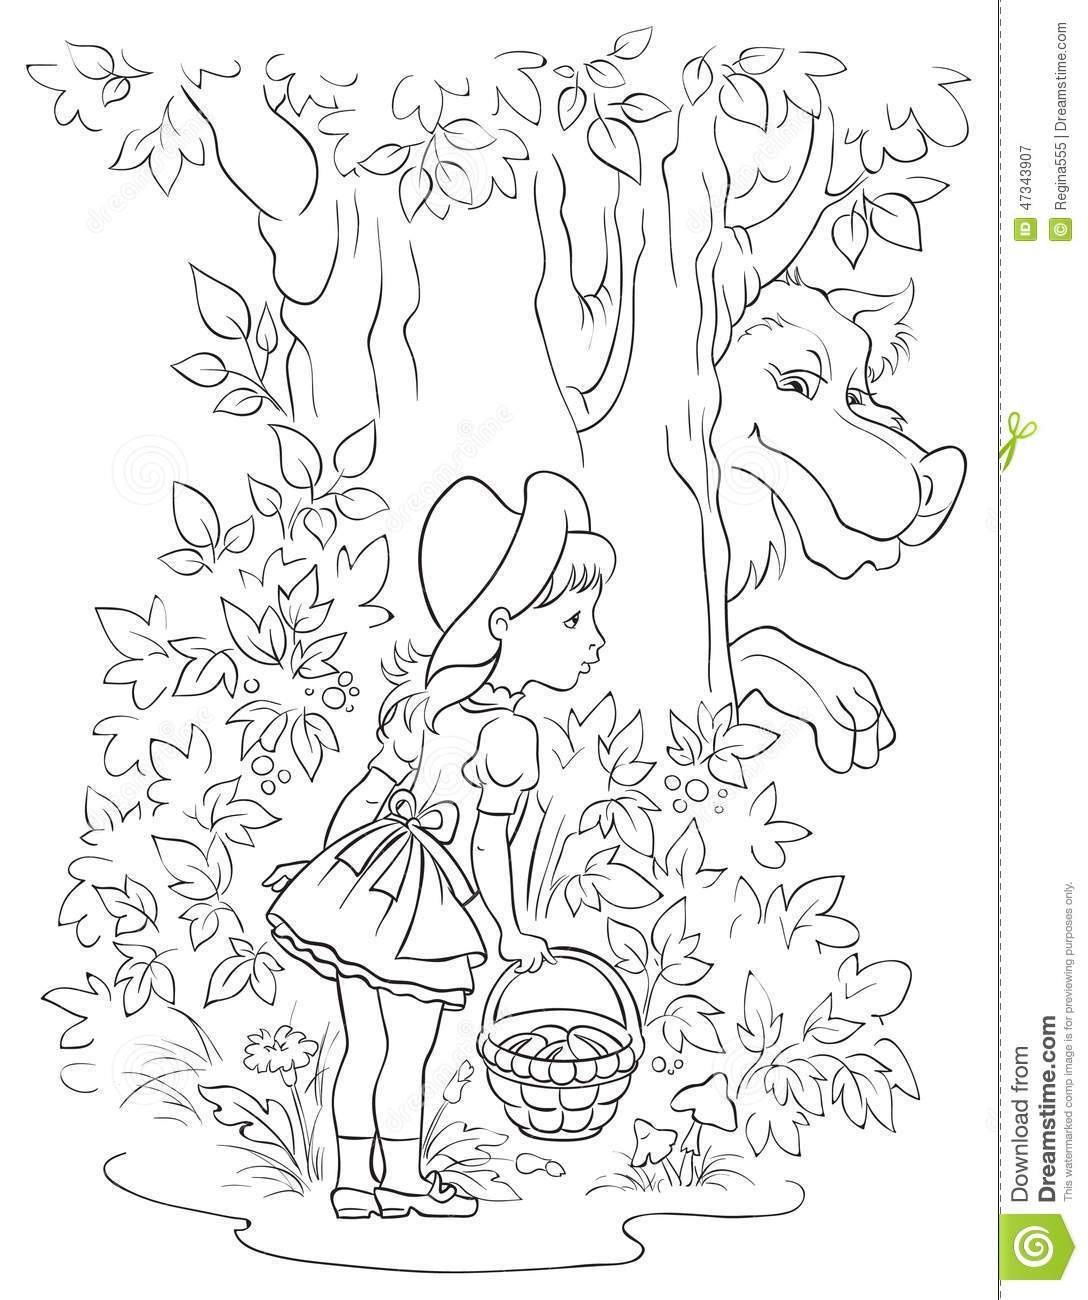 Big Bad Wolf Coloring Page. Little Red Riding Hood 18 Coloring Page - Little Red Riding Hood Masks Printable Free